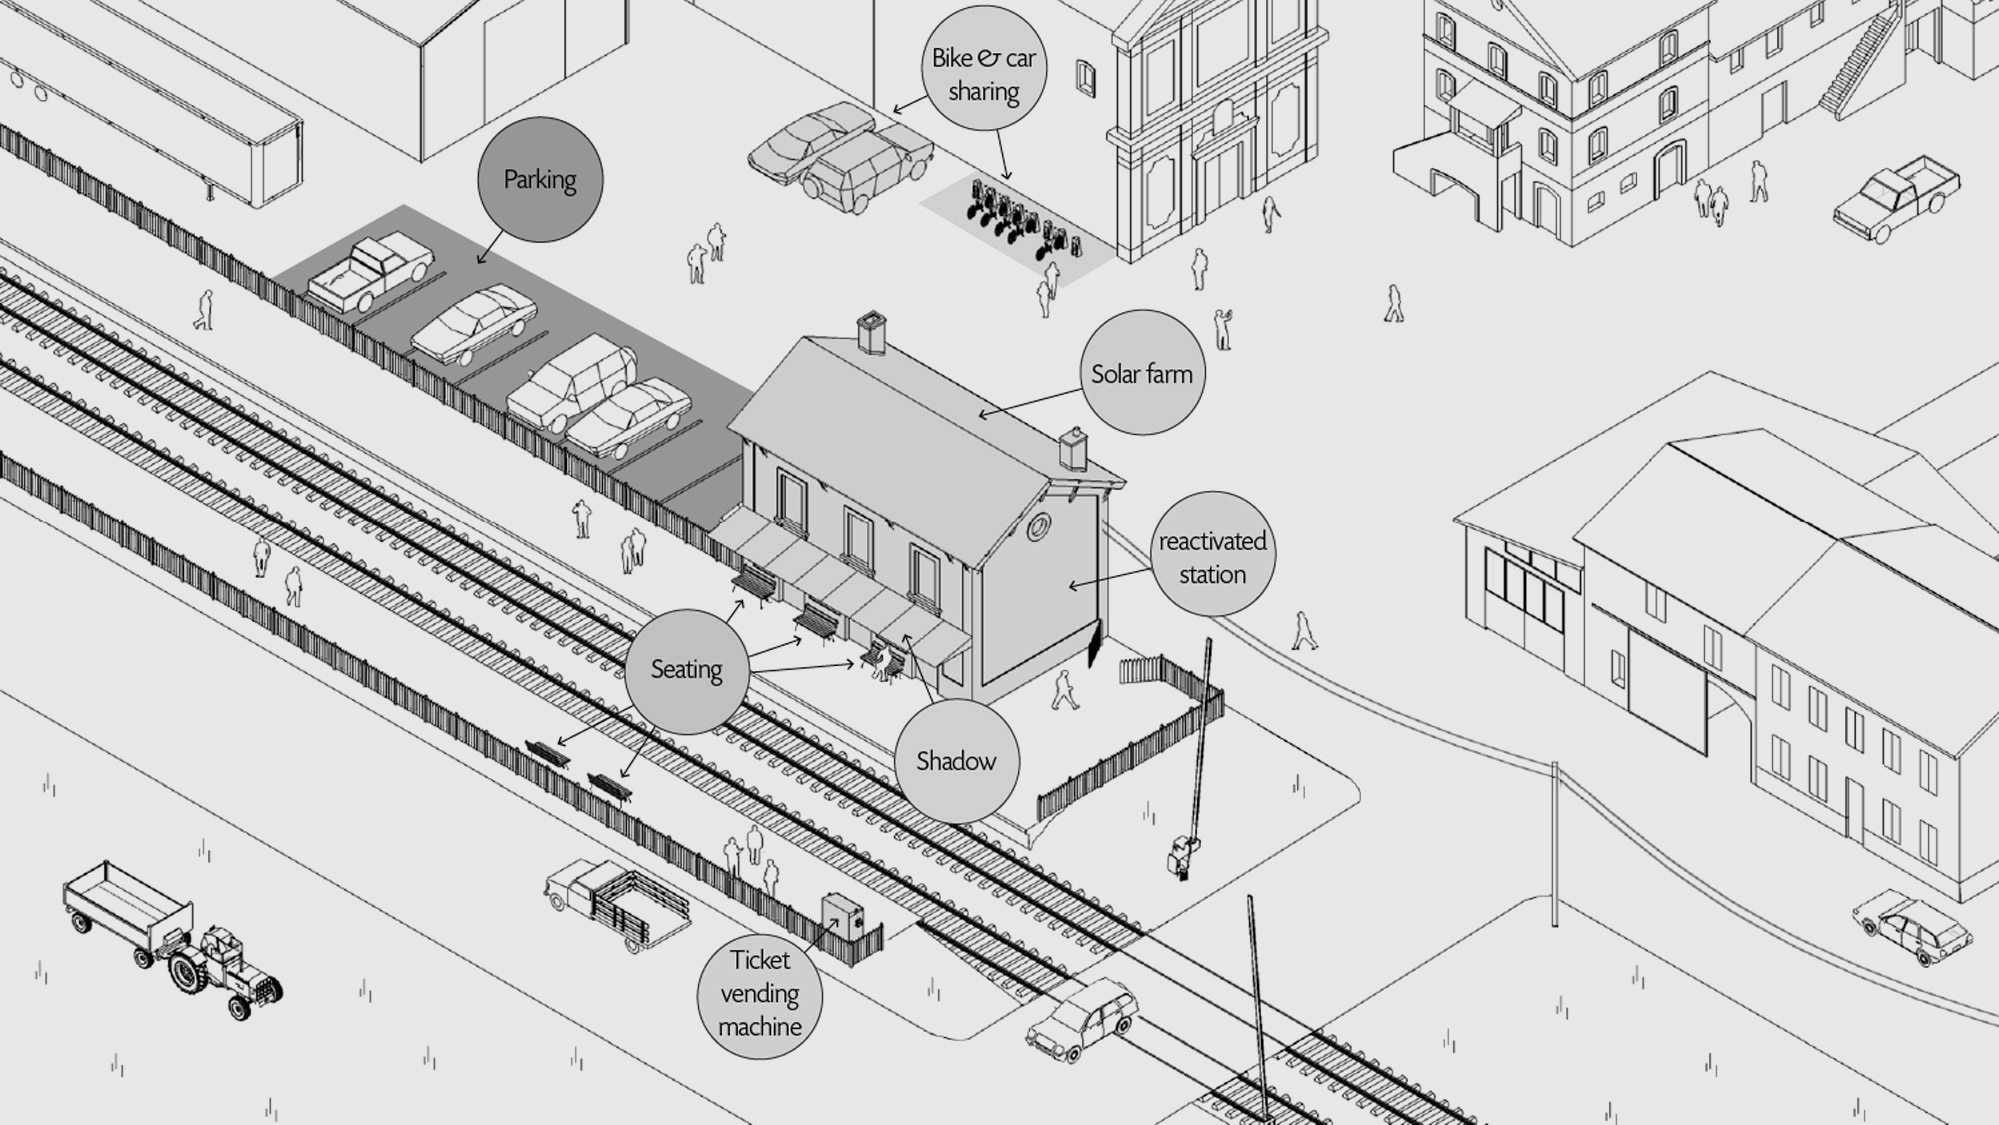 Railway stations regain their centrality and function